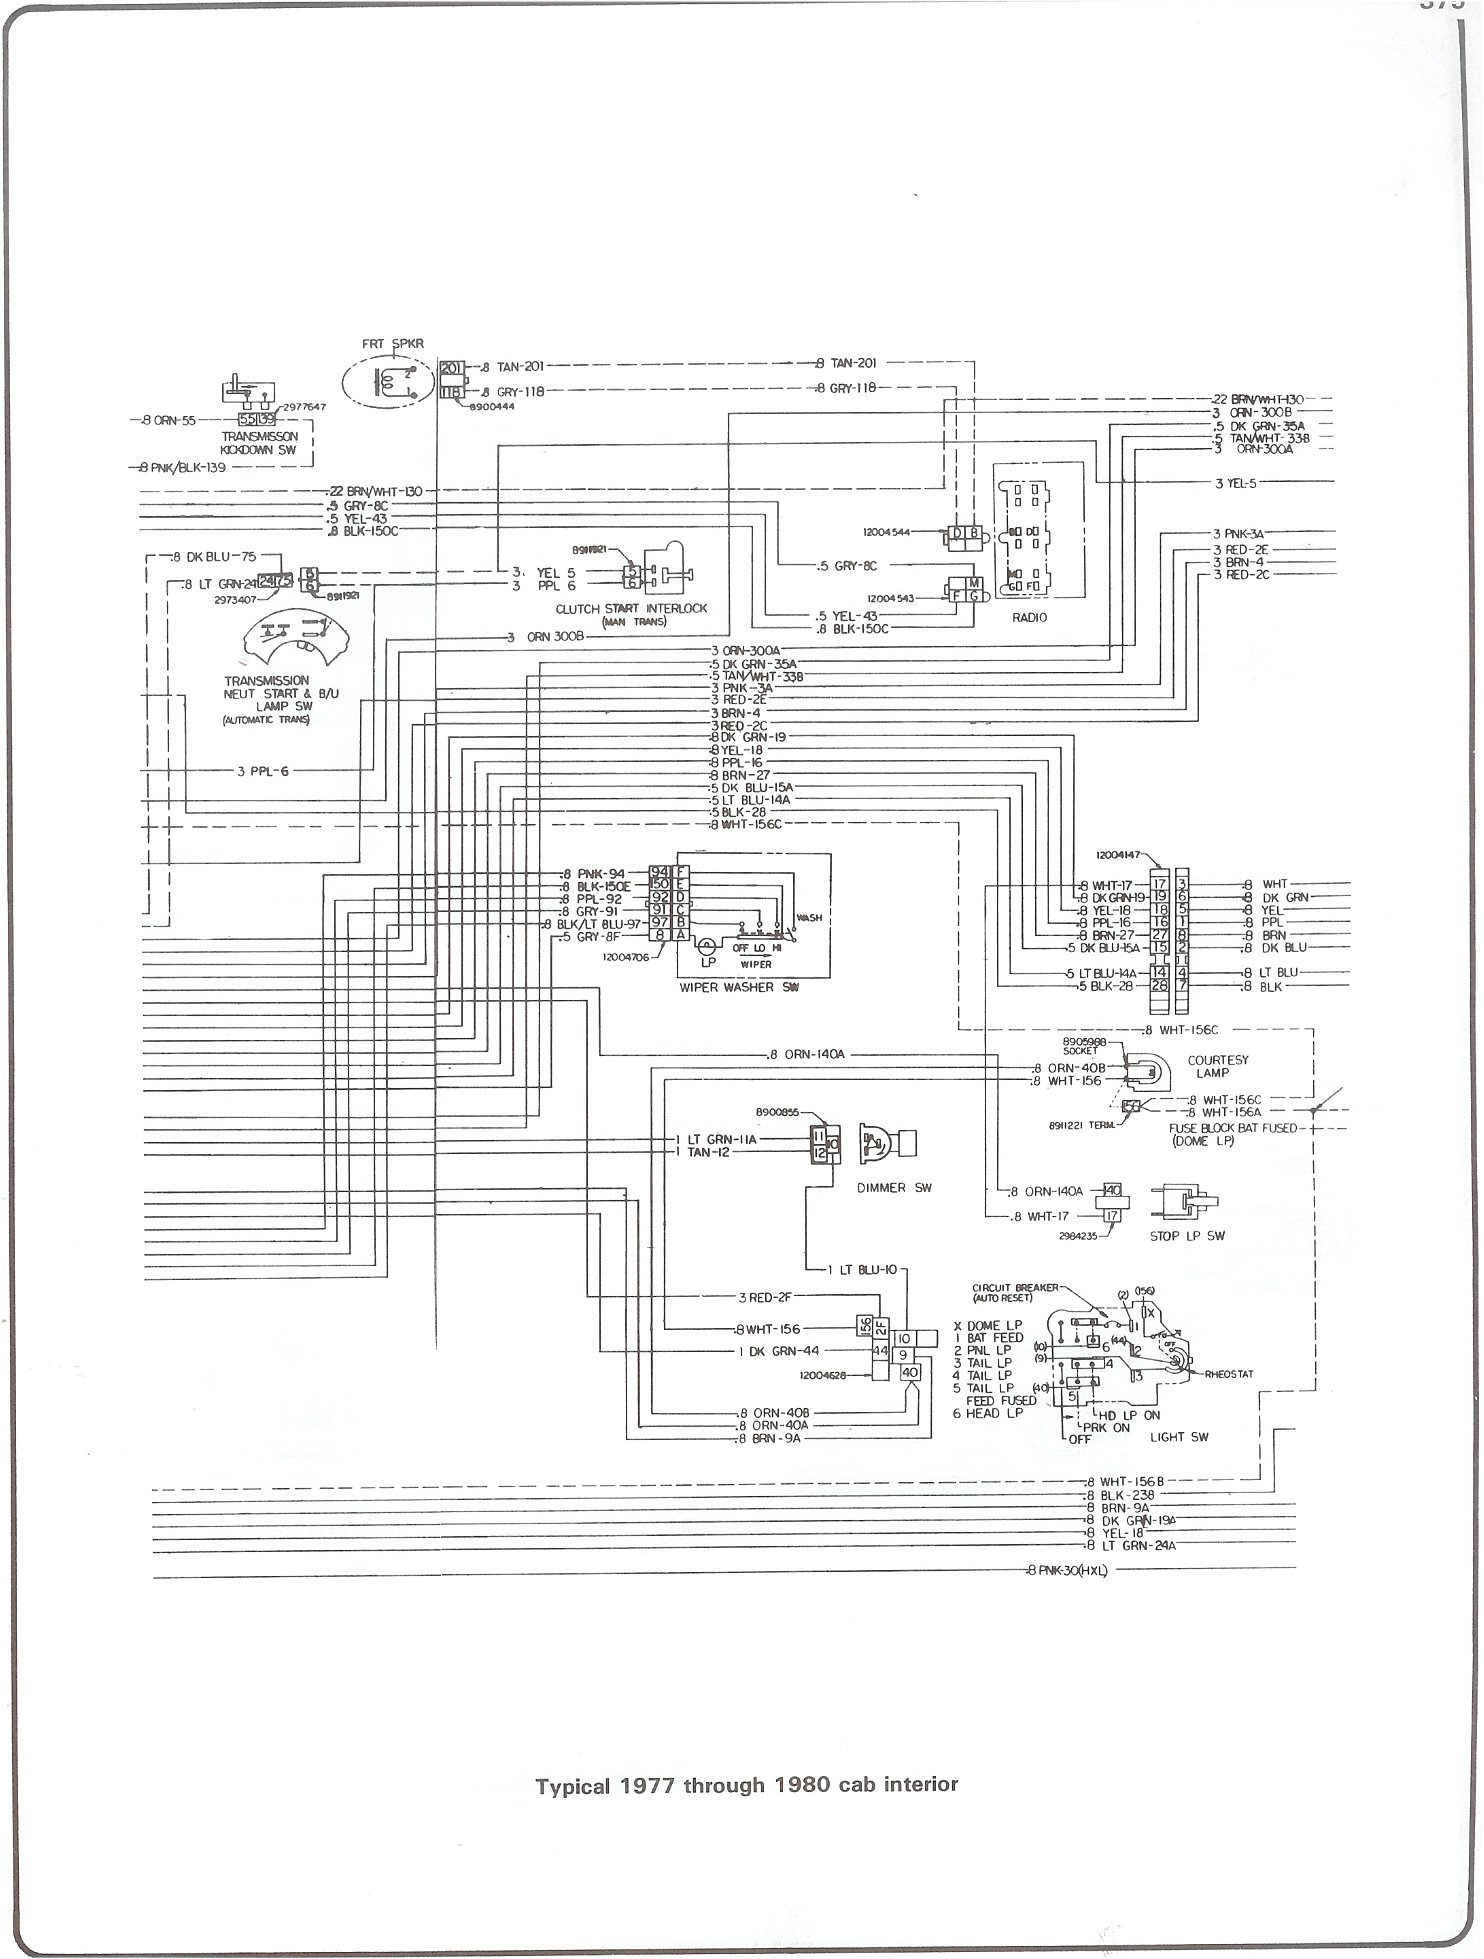 [WRG-1641] 1980 Camaro Ignition Wiring Diagram Schematic